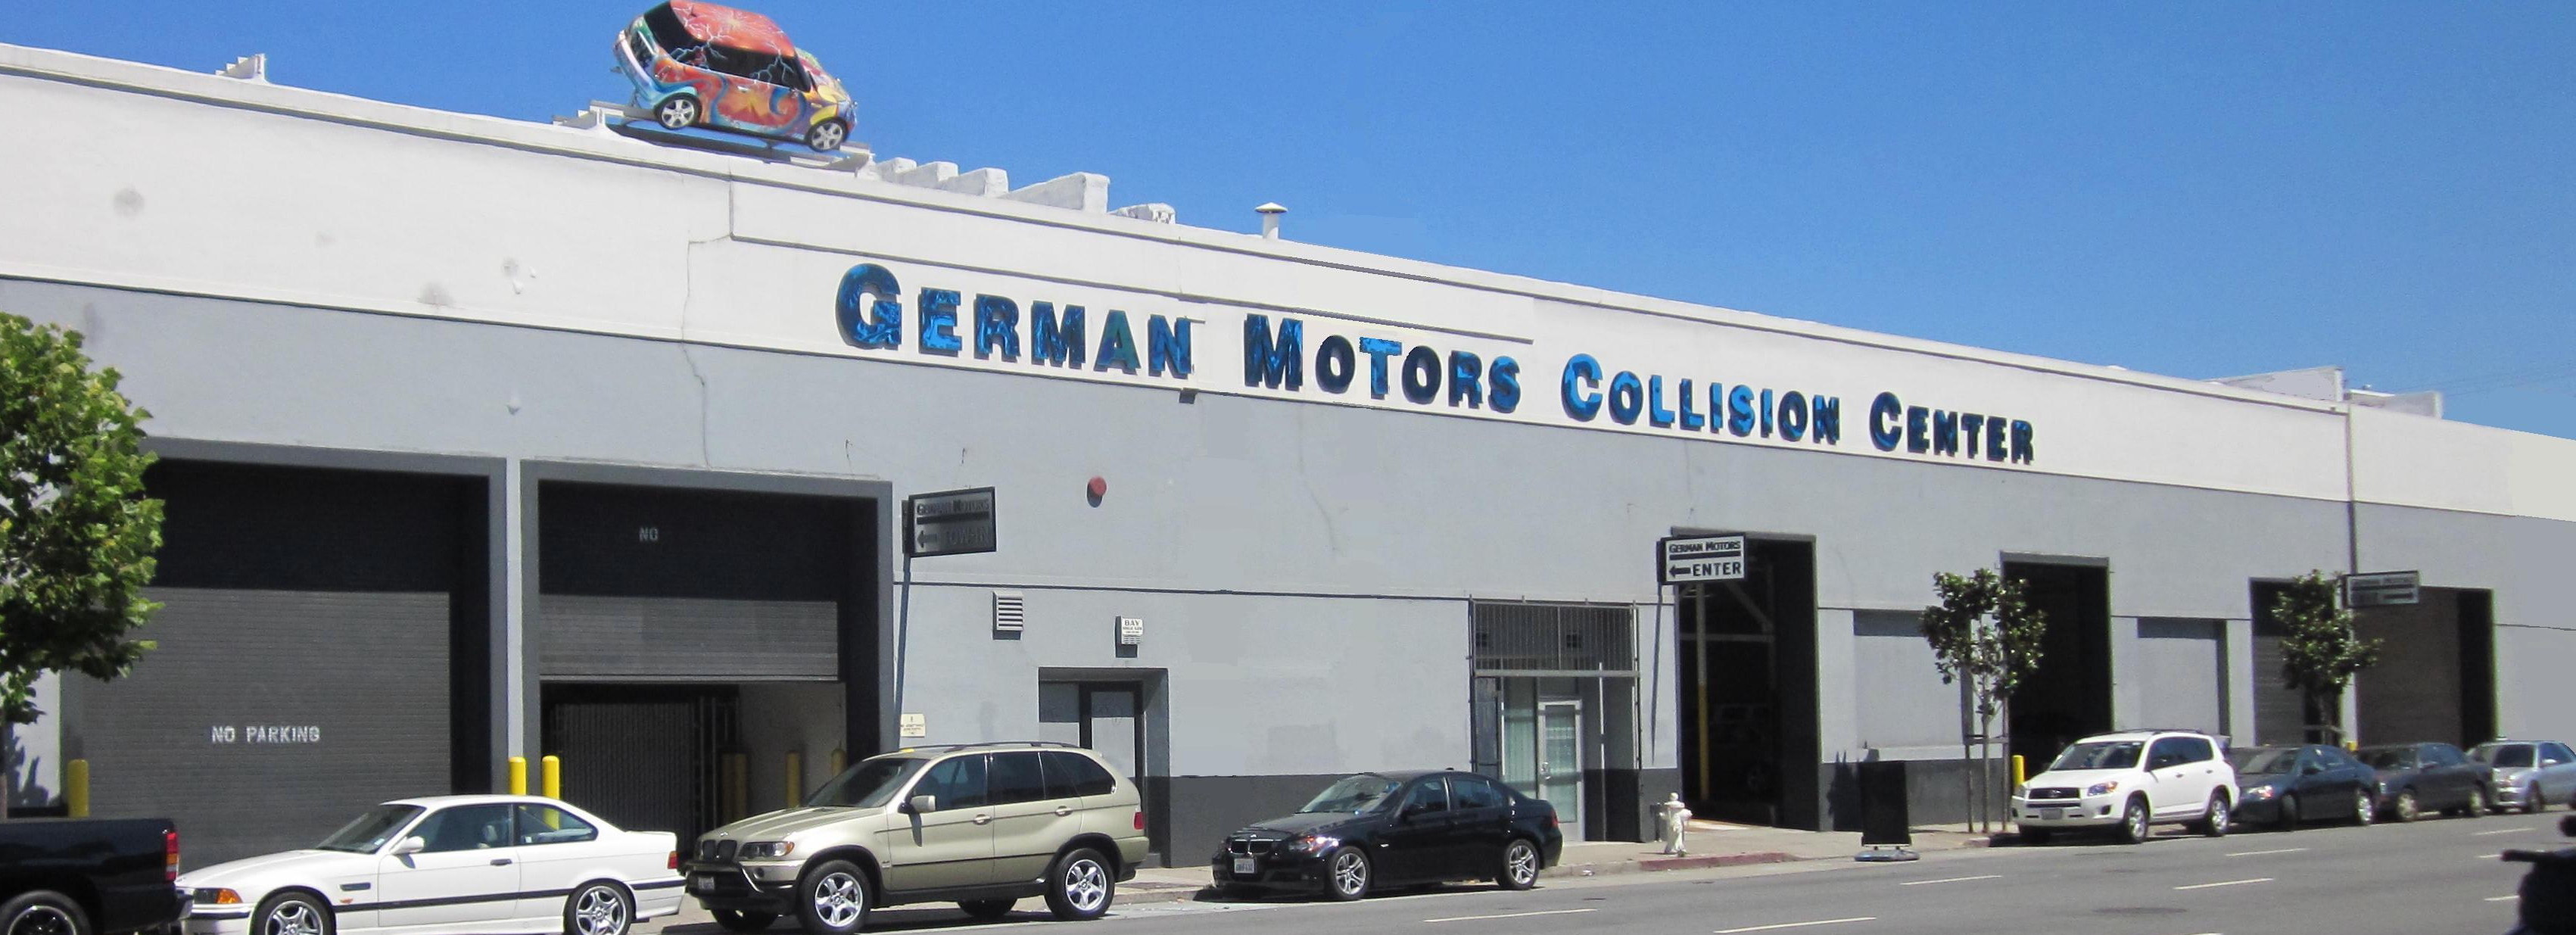 Directions german motors collision center for German motors collision center marin street